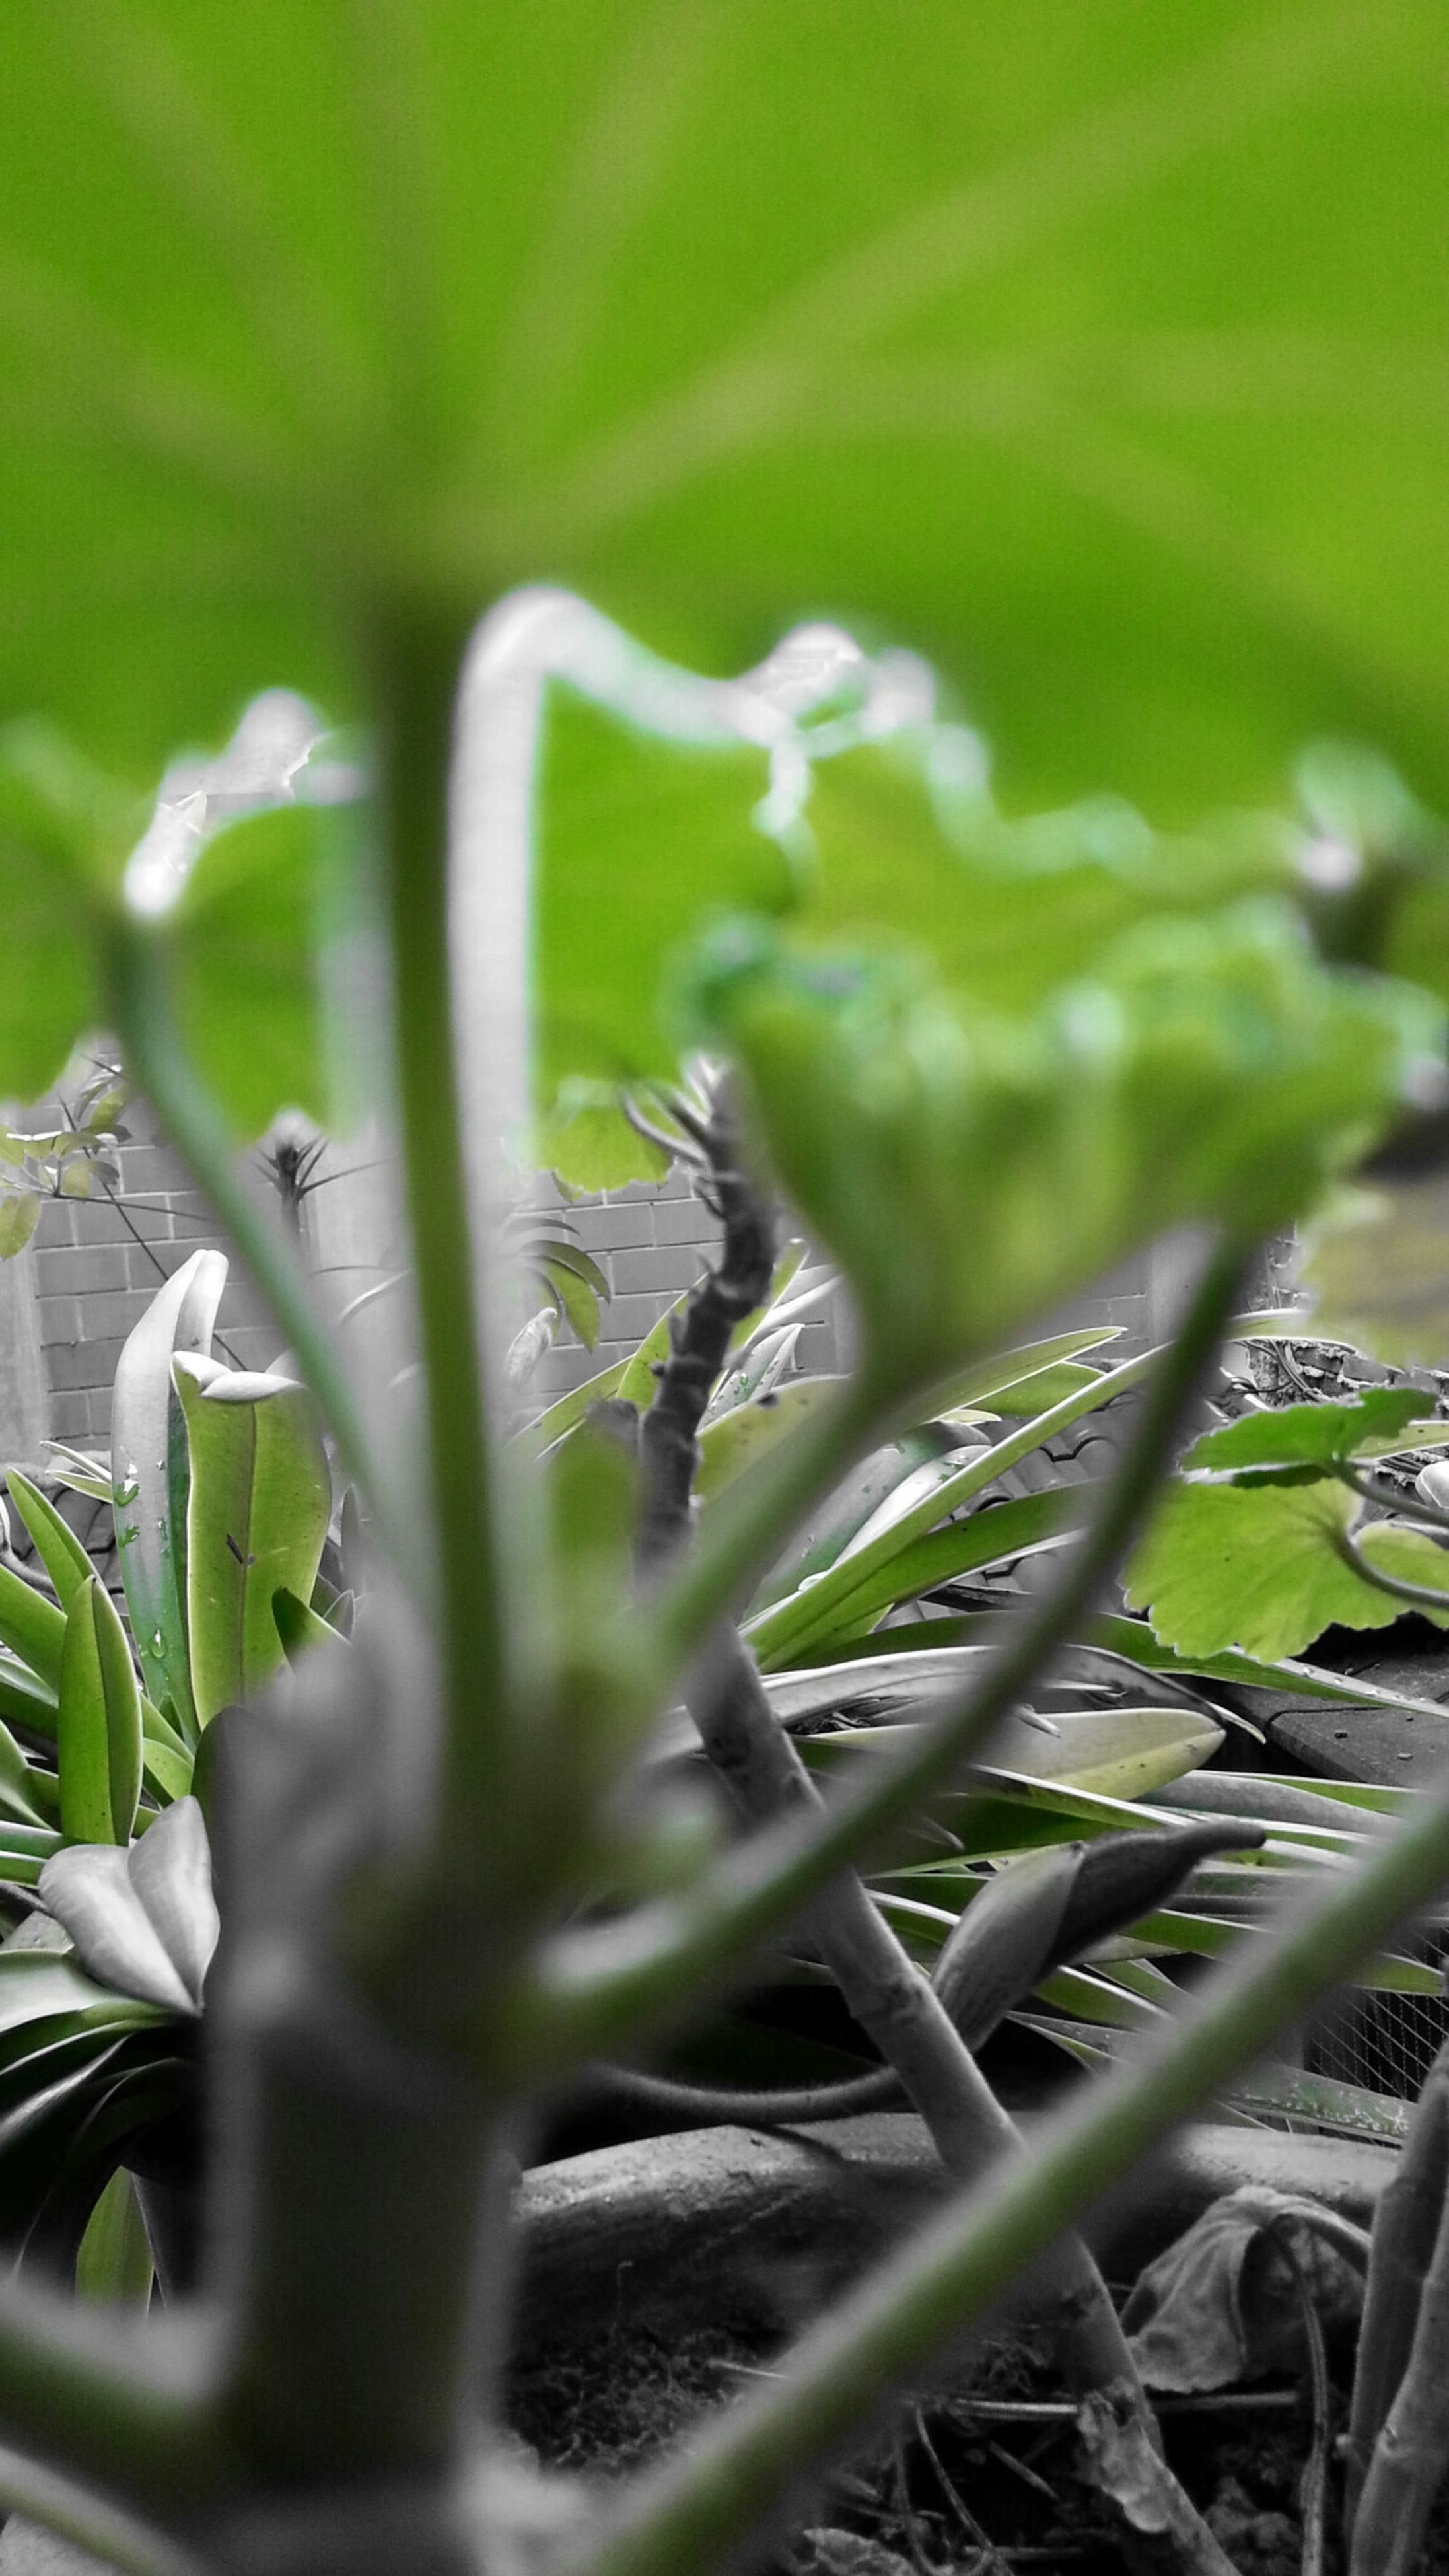 growth, plant, leaf, green color, nature, close-up, focus on foreground, beauty in nature, freshness, flower, selective focus, stem, growing, fragility, field, day, outdoors, white color, no people, tranquility